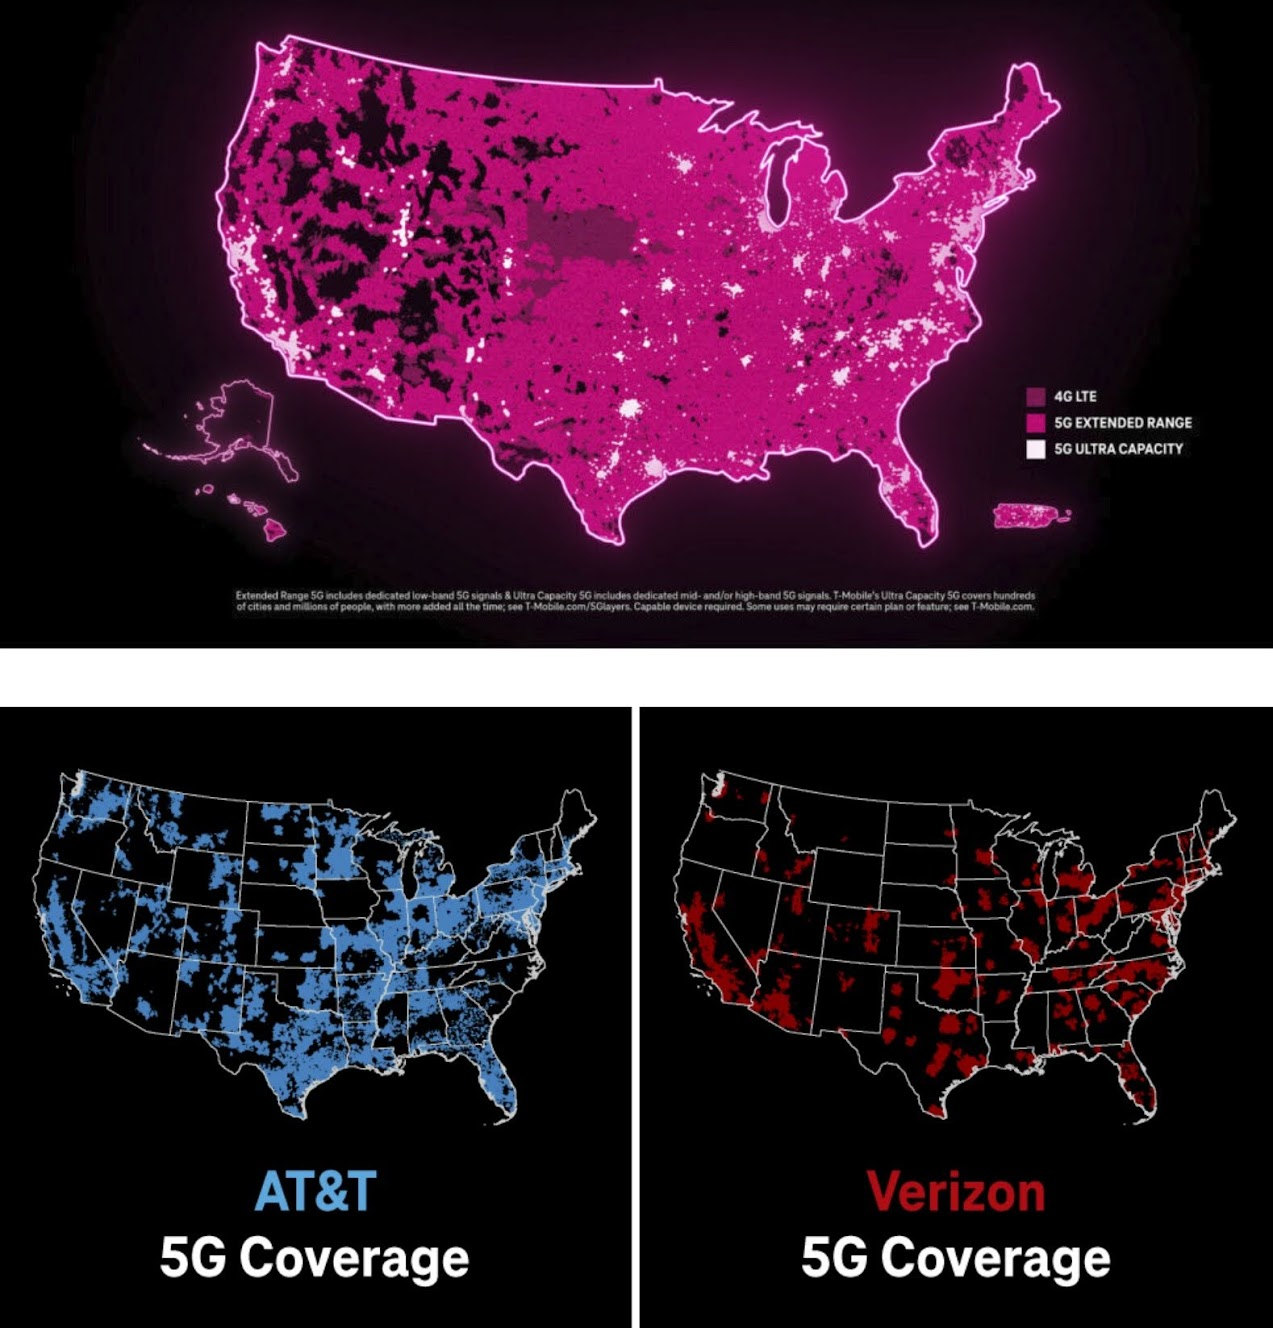 T-Mobile says its low-band 5G network covers 305 million people and mid-band 5G covers 165 million people.